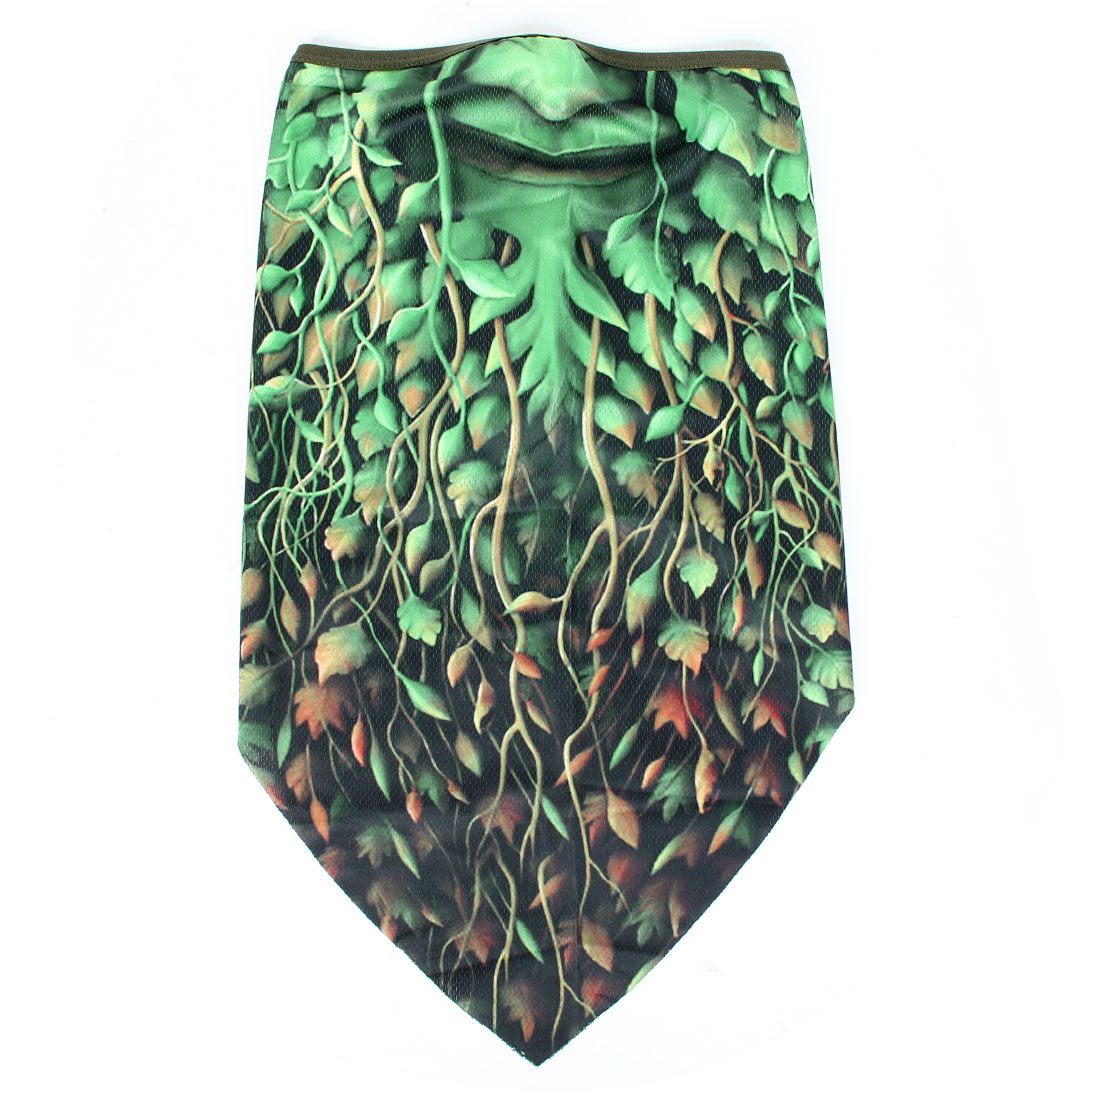 Elastic Cuff Green Plant Demon Pattern Cycling Motorcycle Half Face Mask Scarf